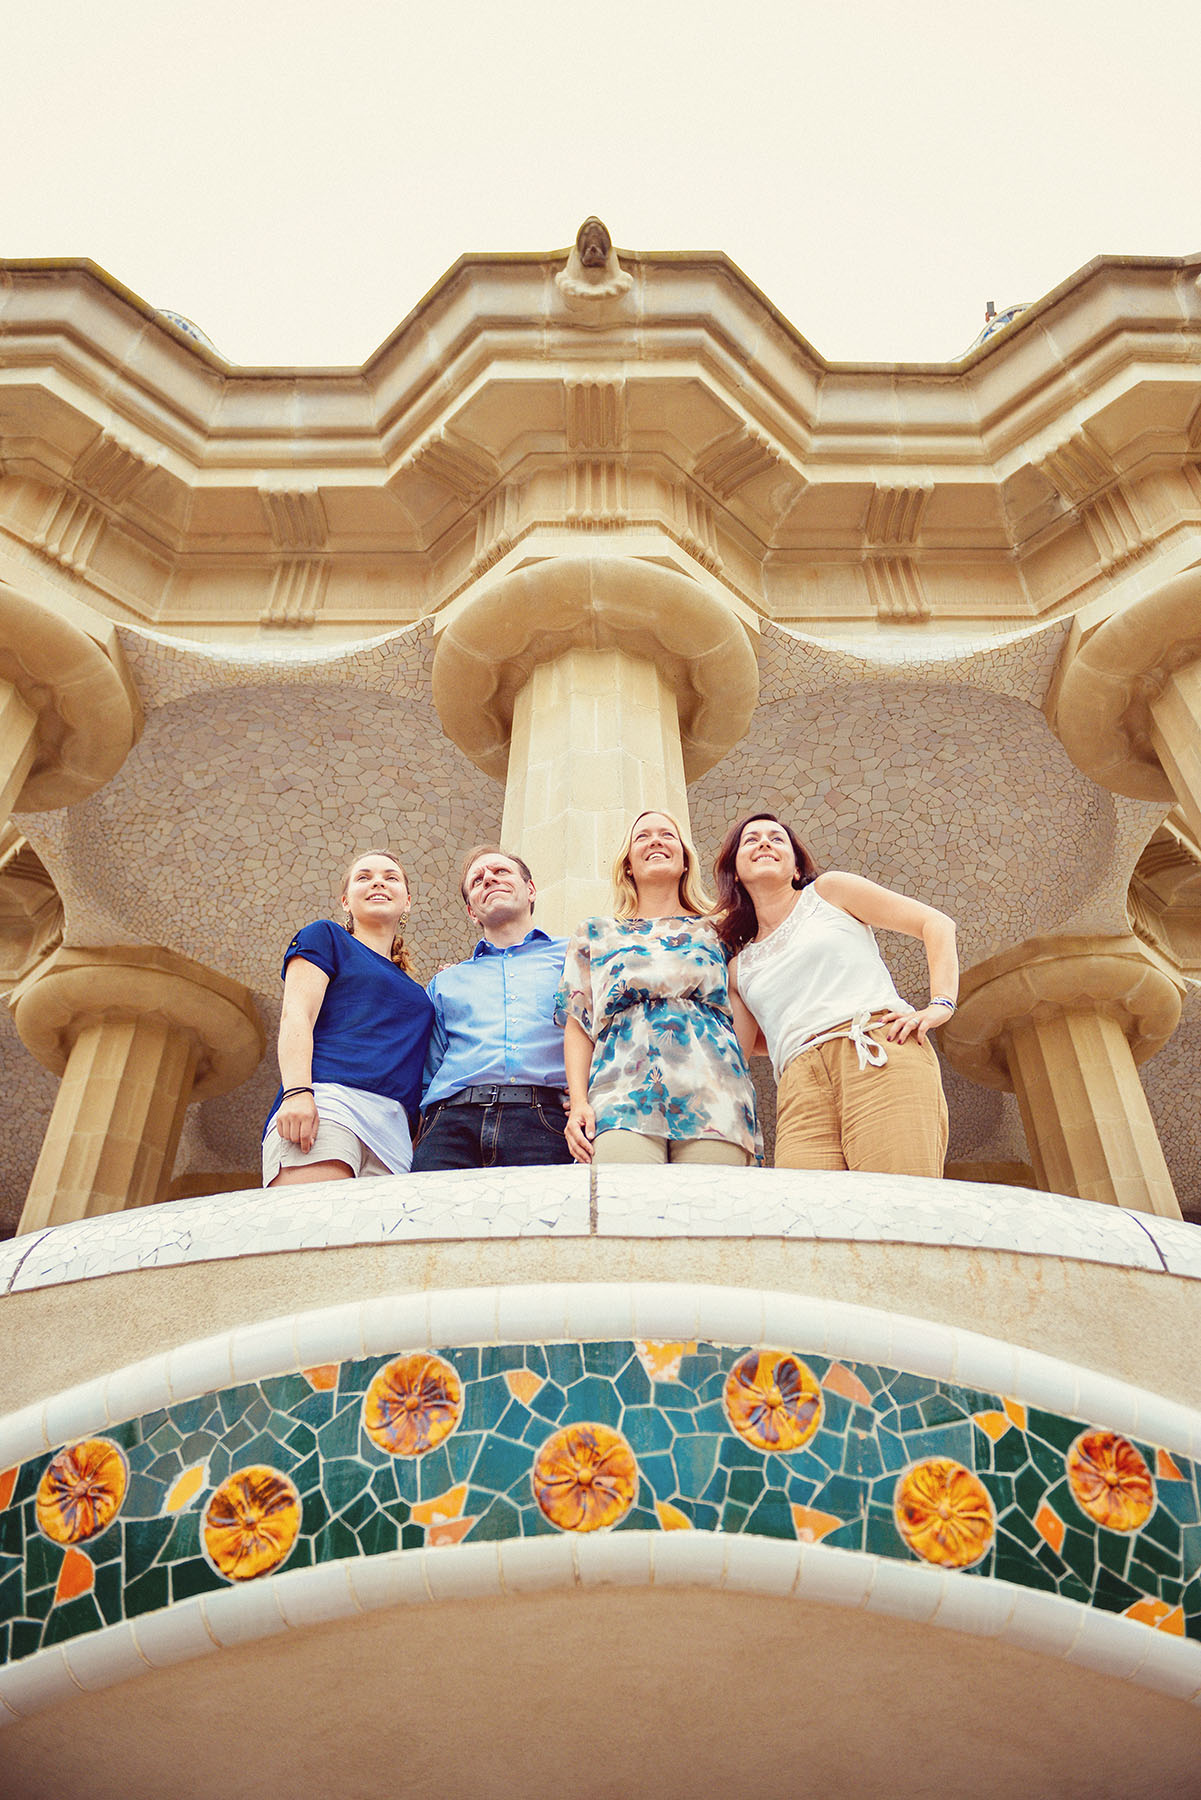 Pearl Sandals wedding organisers. Team portrait photo shoot in Park Guell, Barcelona